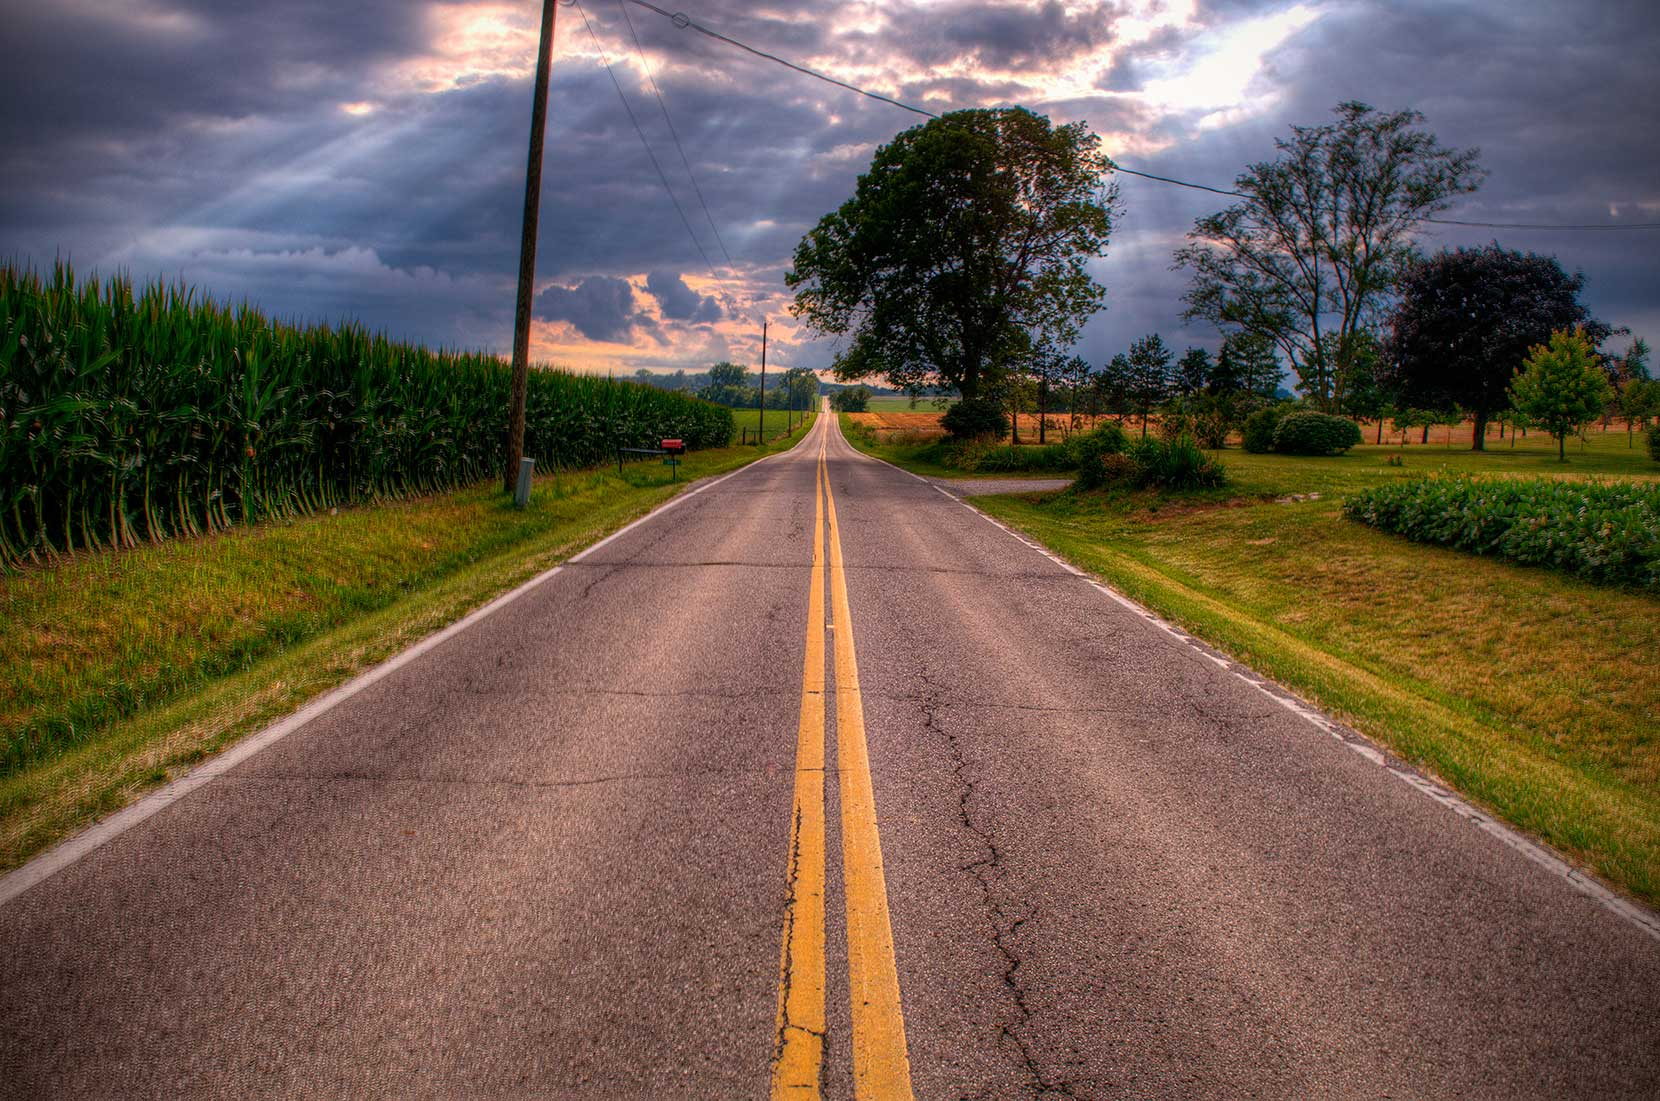 ohio rural road trip oh destinations visit roads near places driving midwest miss state trips place many onlyinyourstate perfectly towns